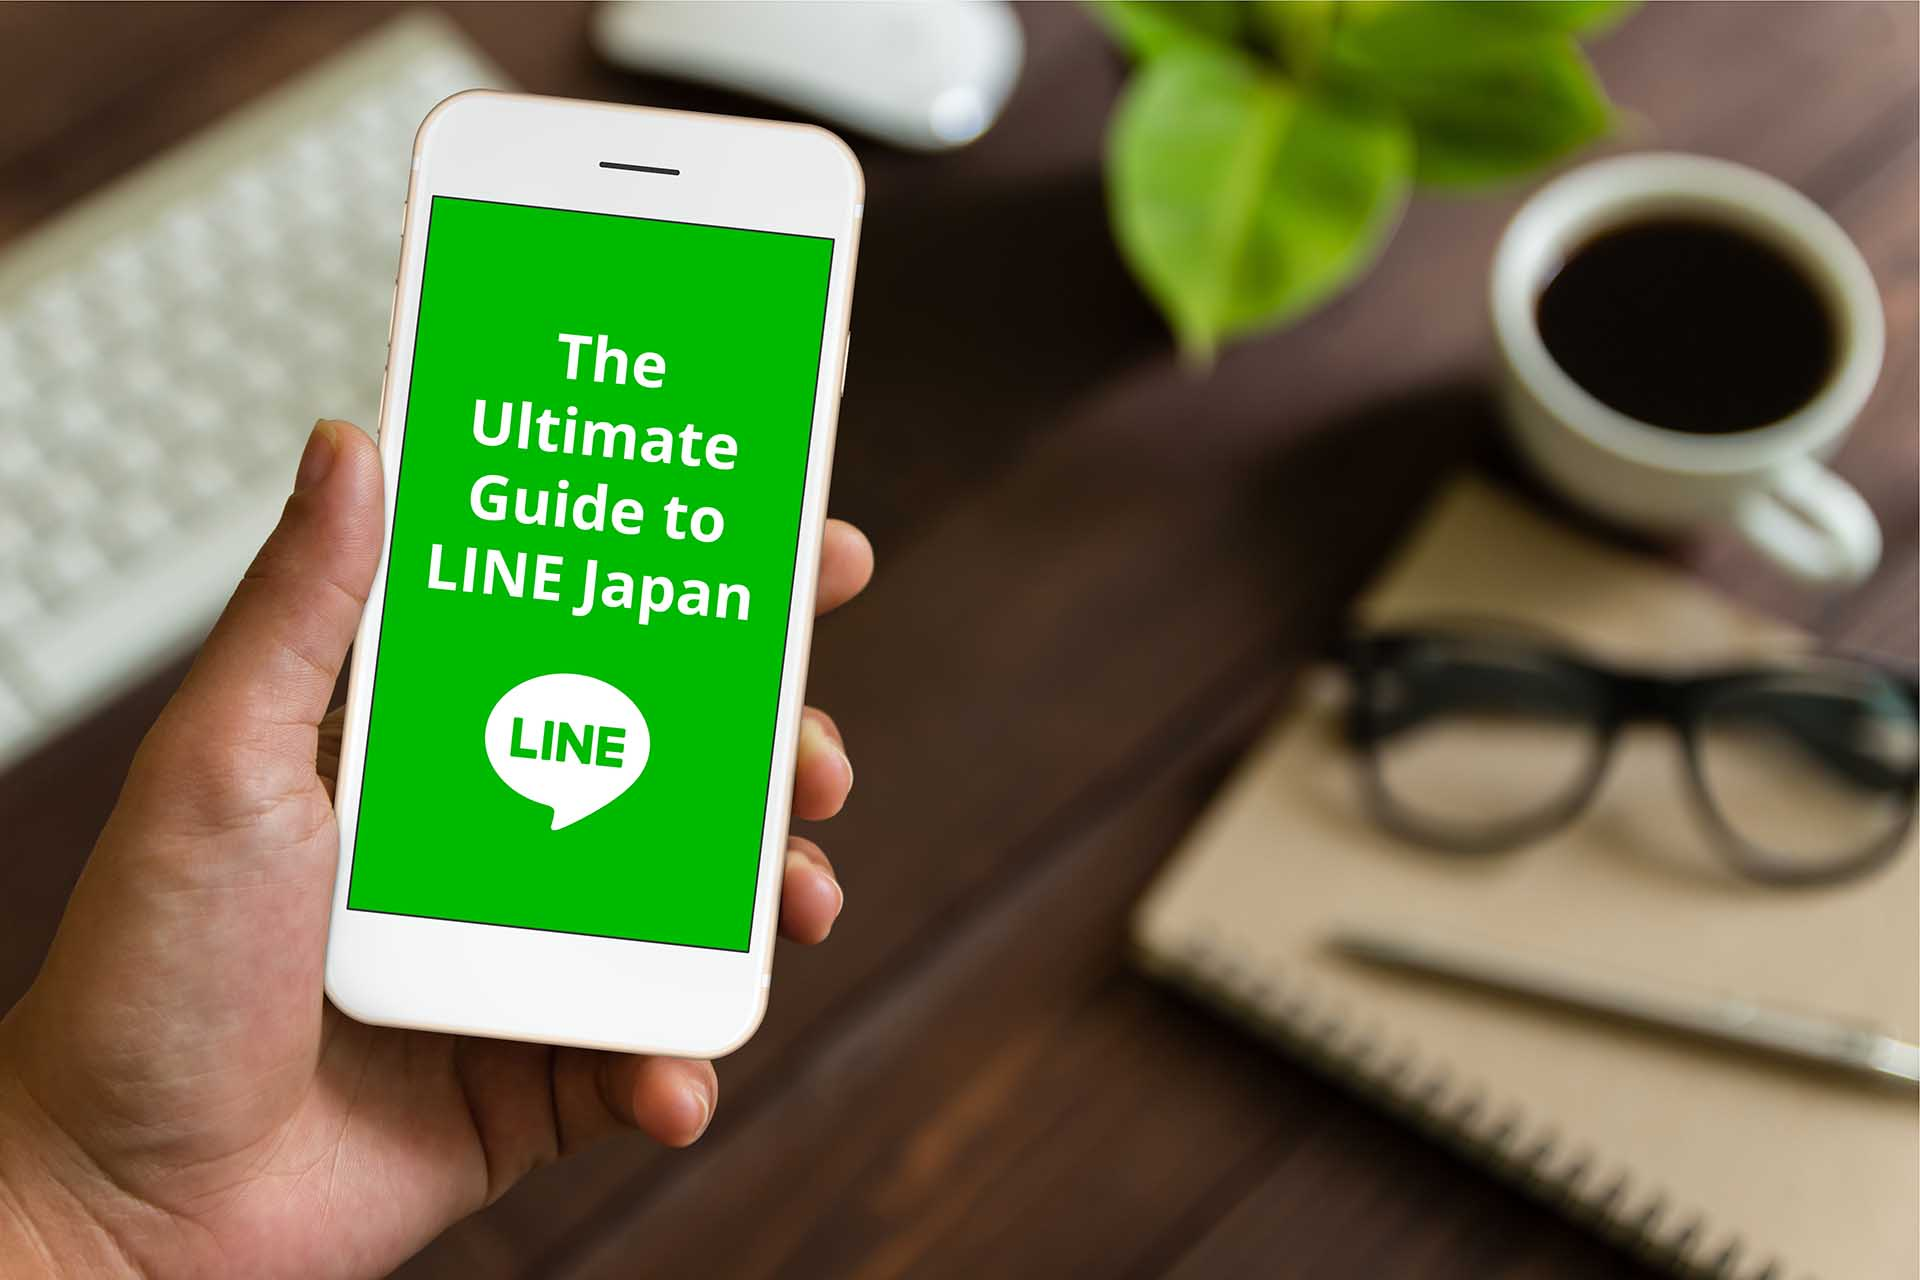 The Ultimate Guide To Advertising On LINE Japan | Digital Marketing For Asia